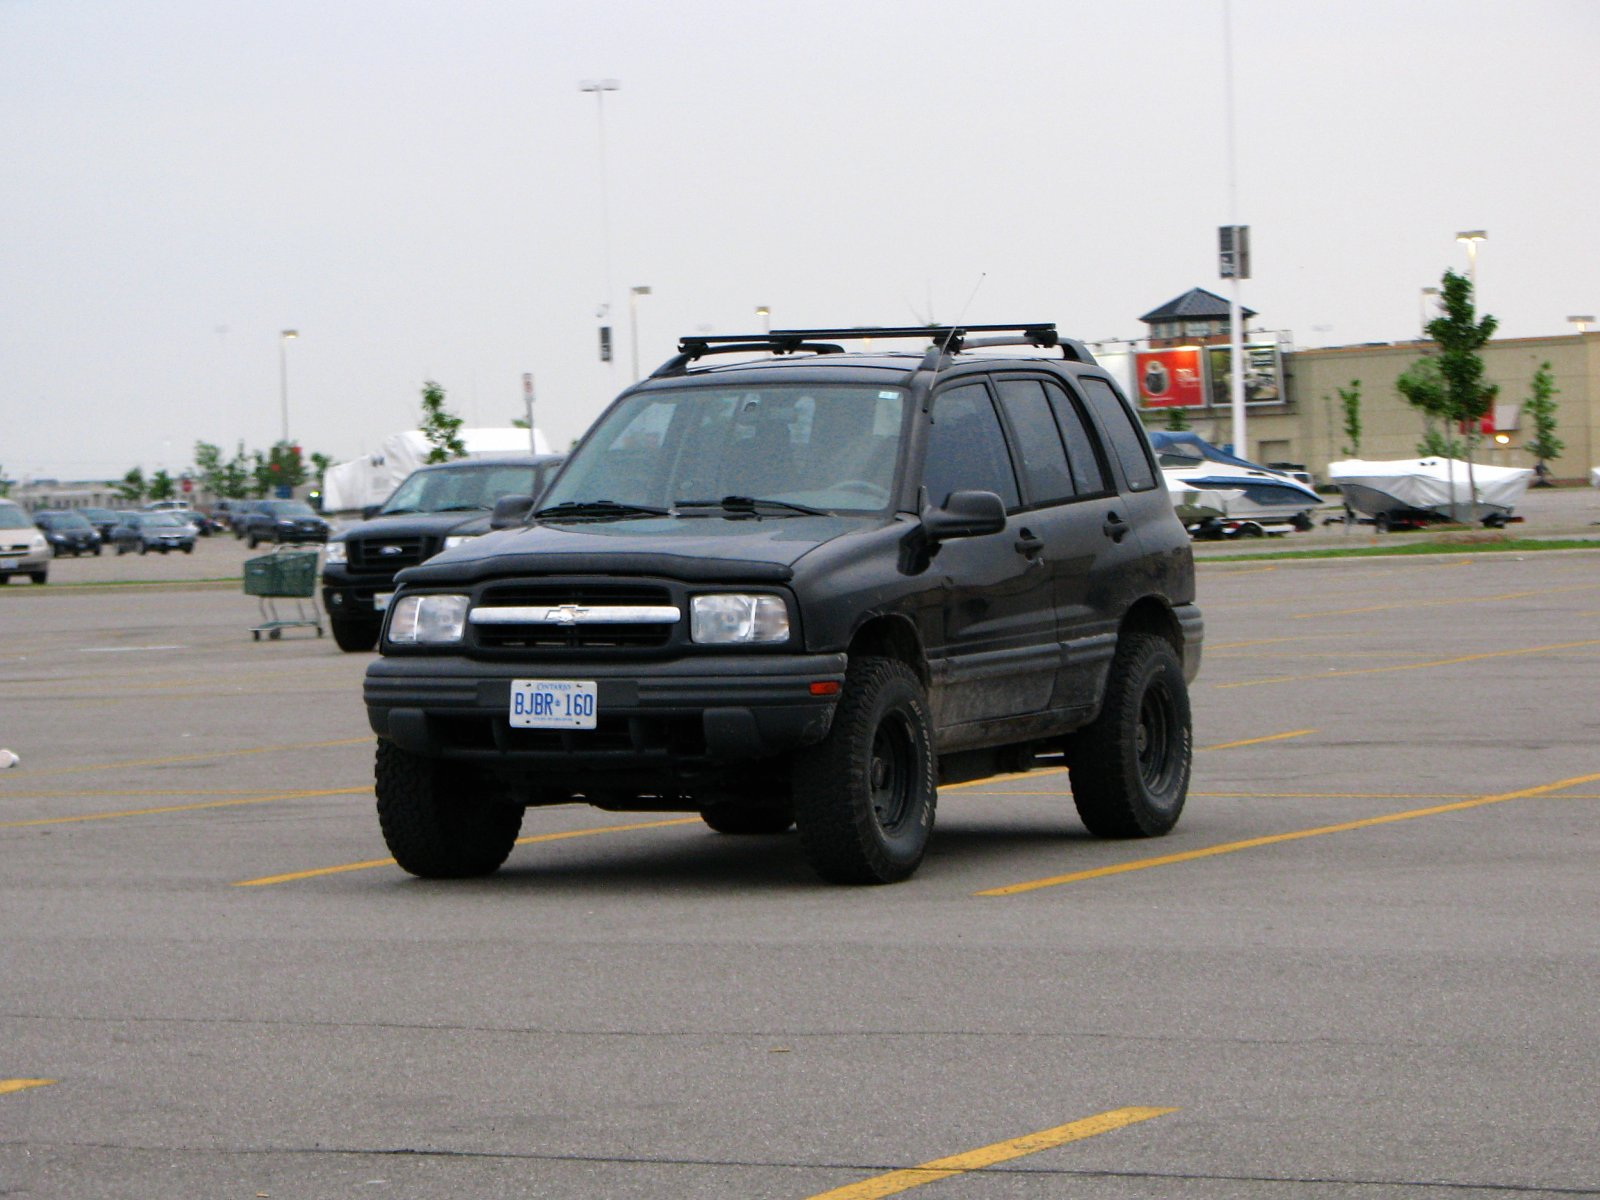 Lifted Chevy Tracker